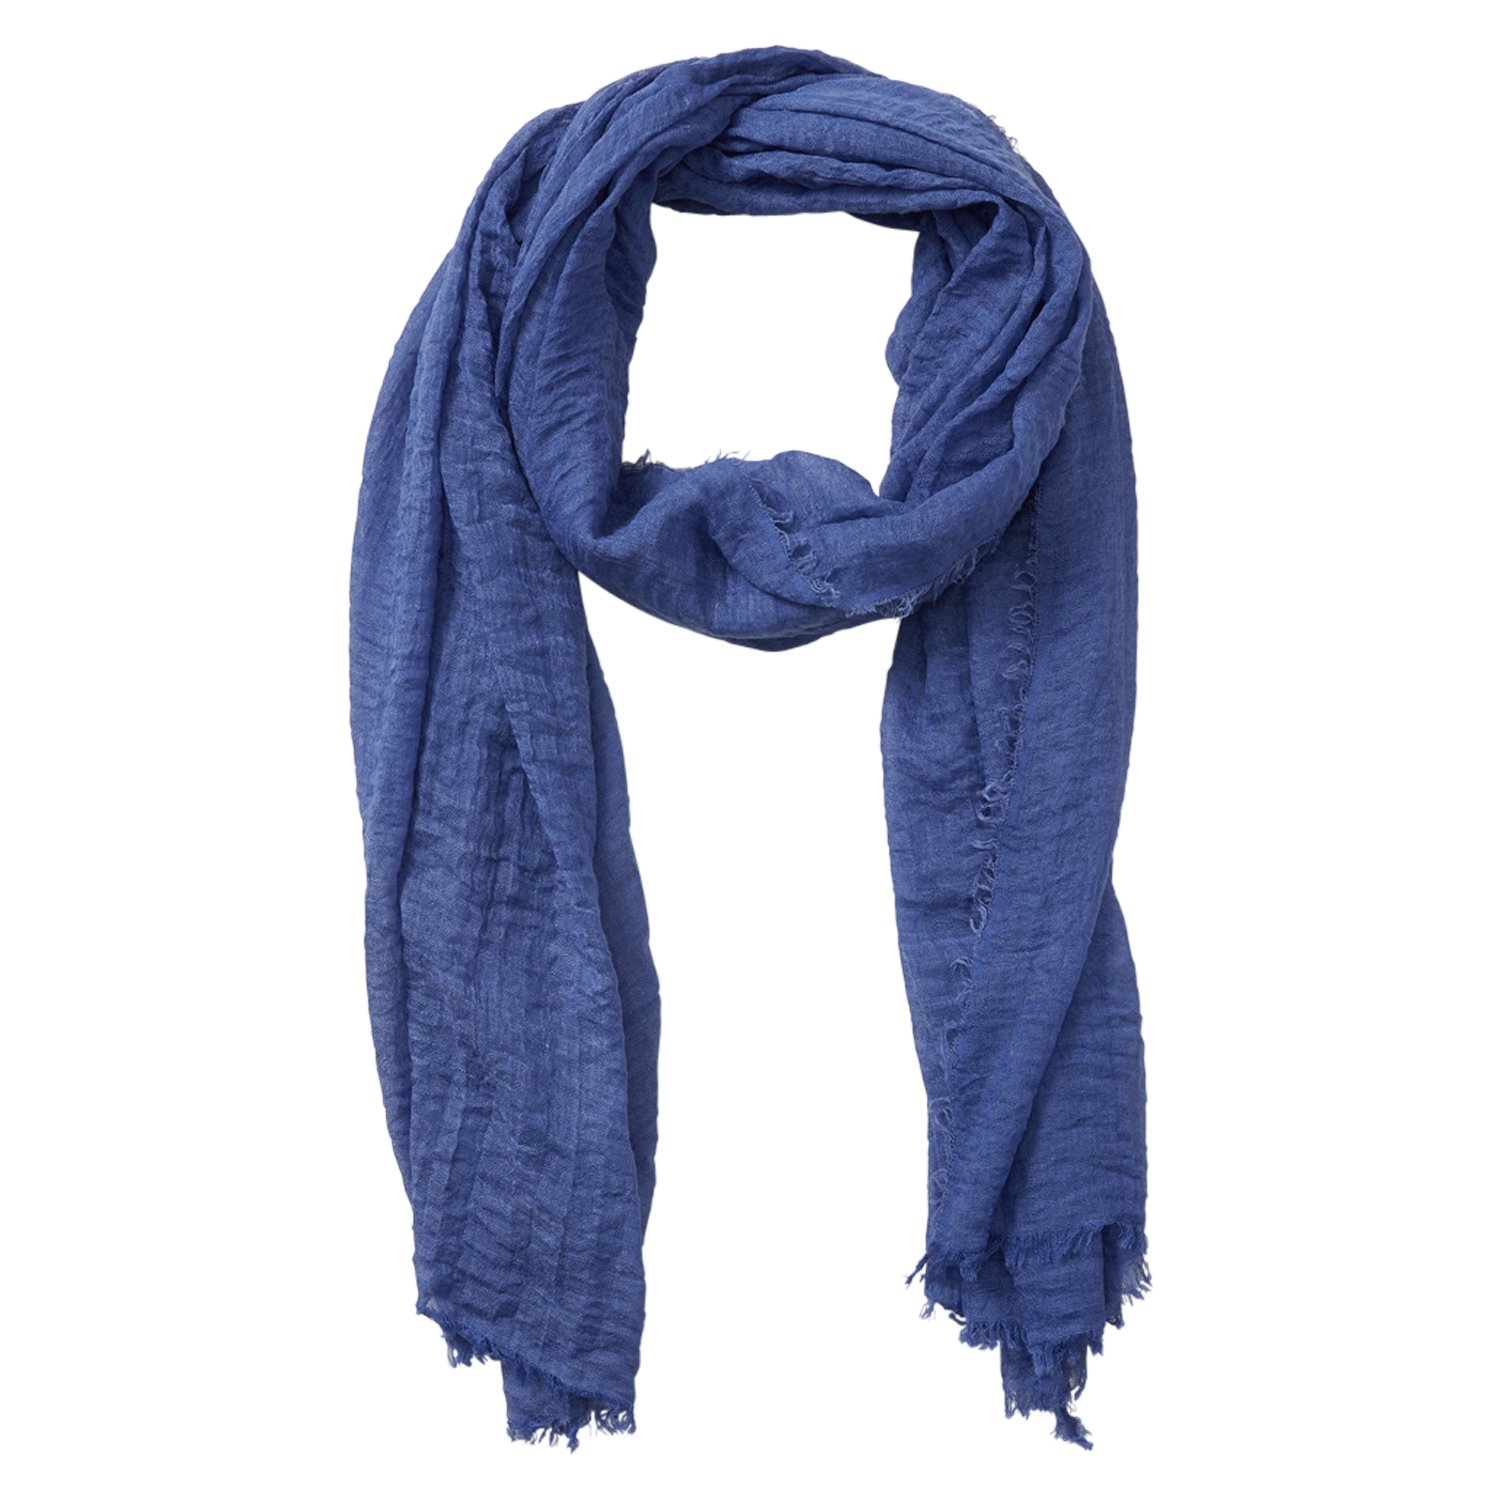 Tickled Pink Classic Soft Solid Stylish Long Lightweight Pashmina-Like Cotton Blend Scarf 38 x 70'' - Blue